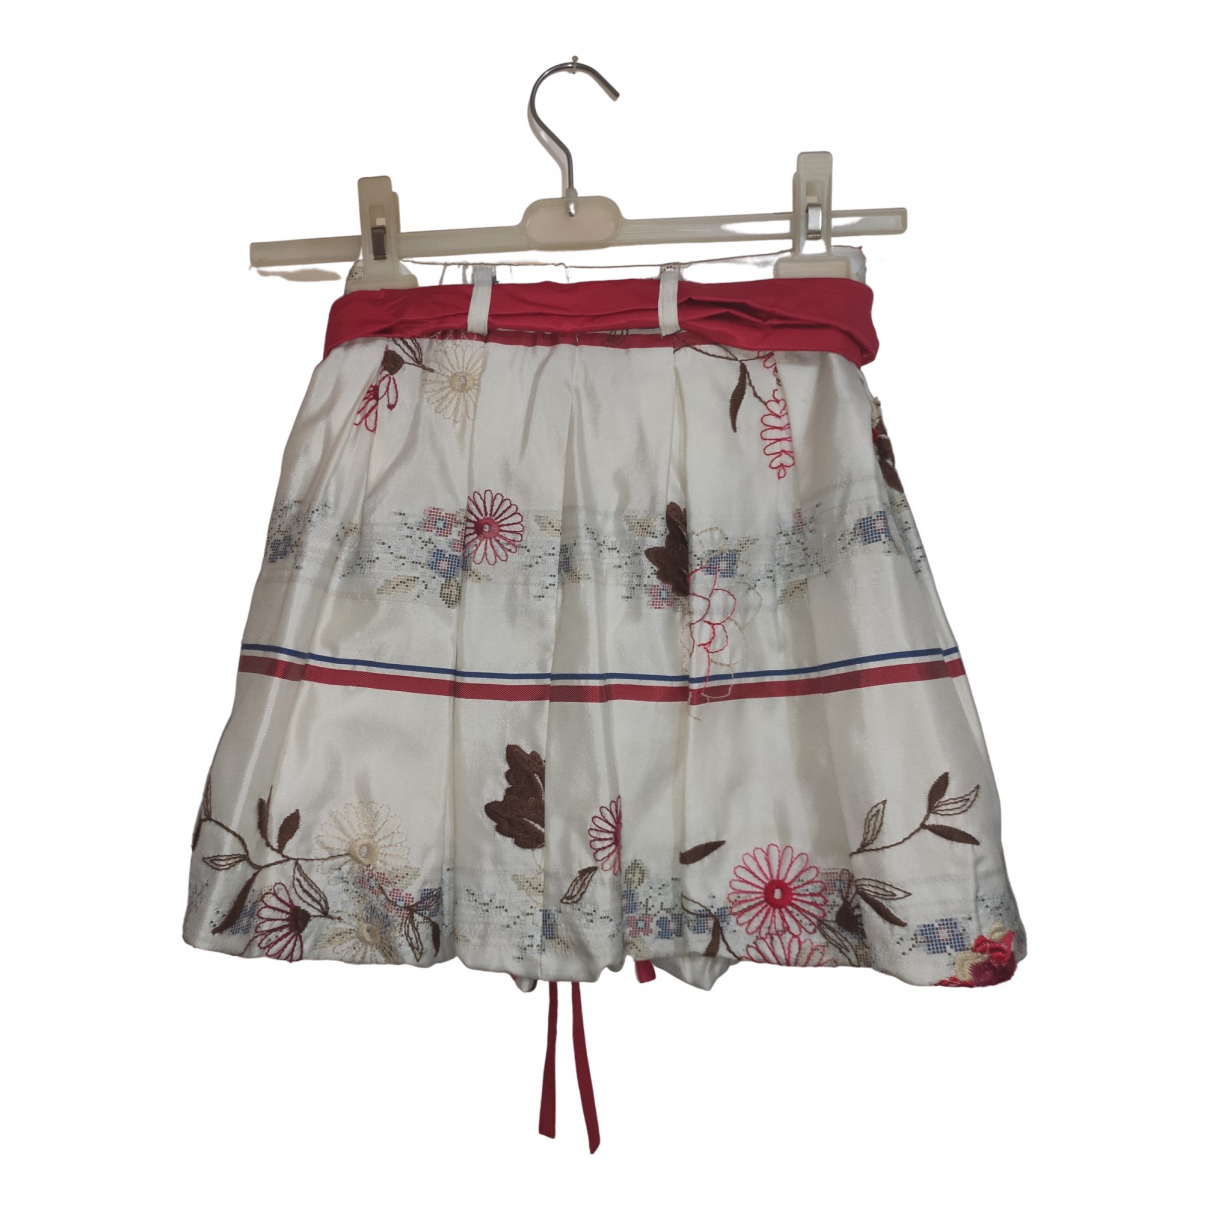 Romeo Gigli \N Cotton skirt for Kids 8 years - until 50 inches UK